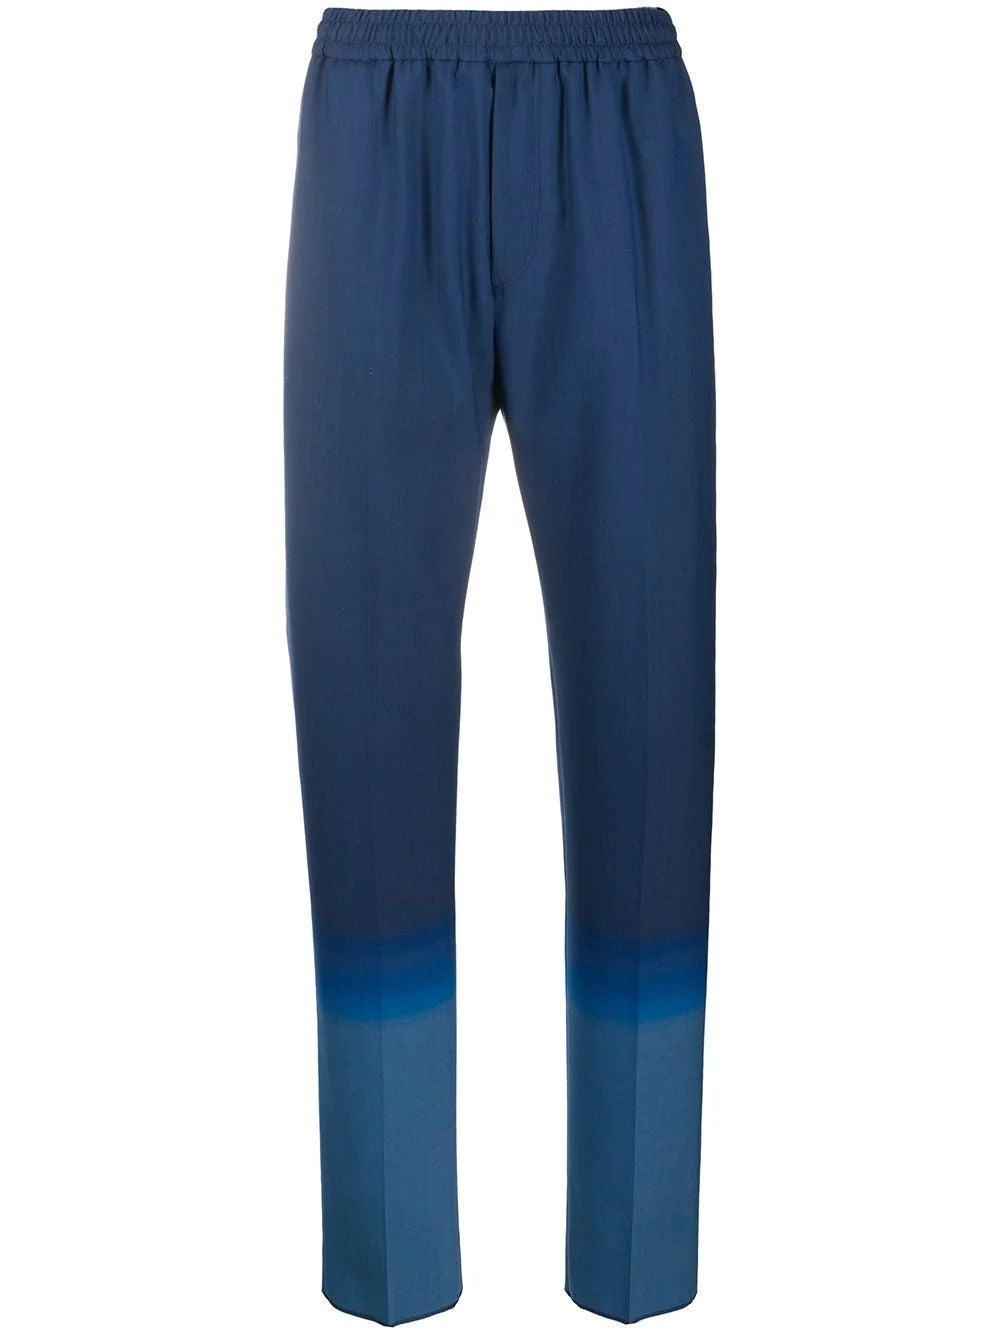 Blue Gradient Formal Jogger Pants